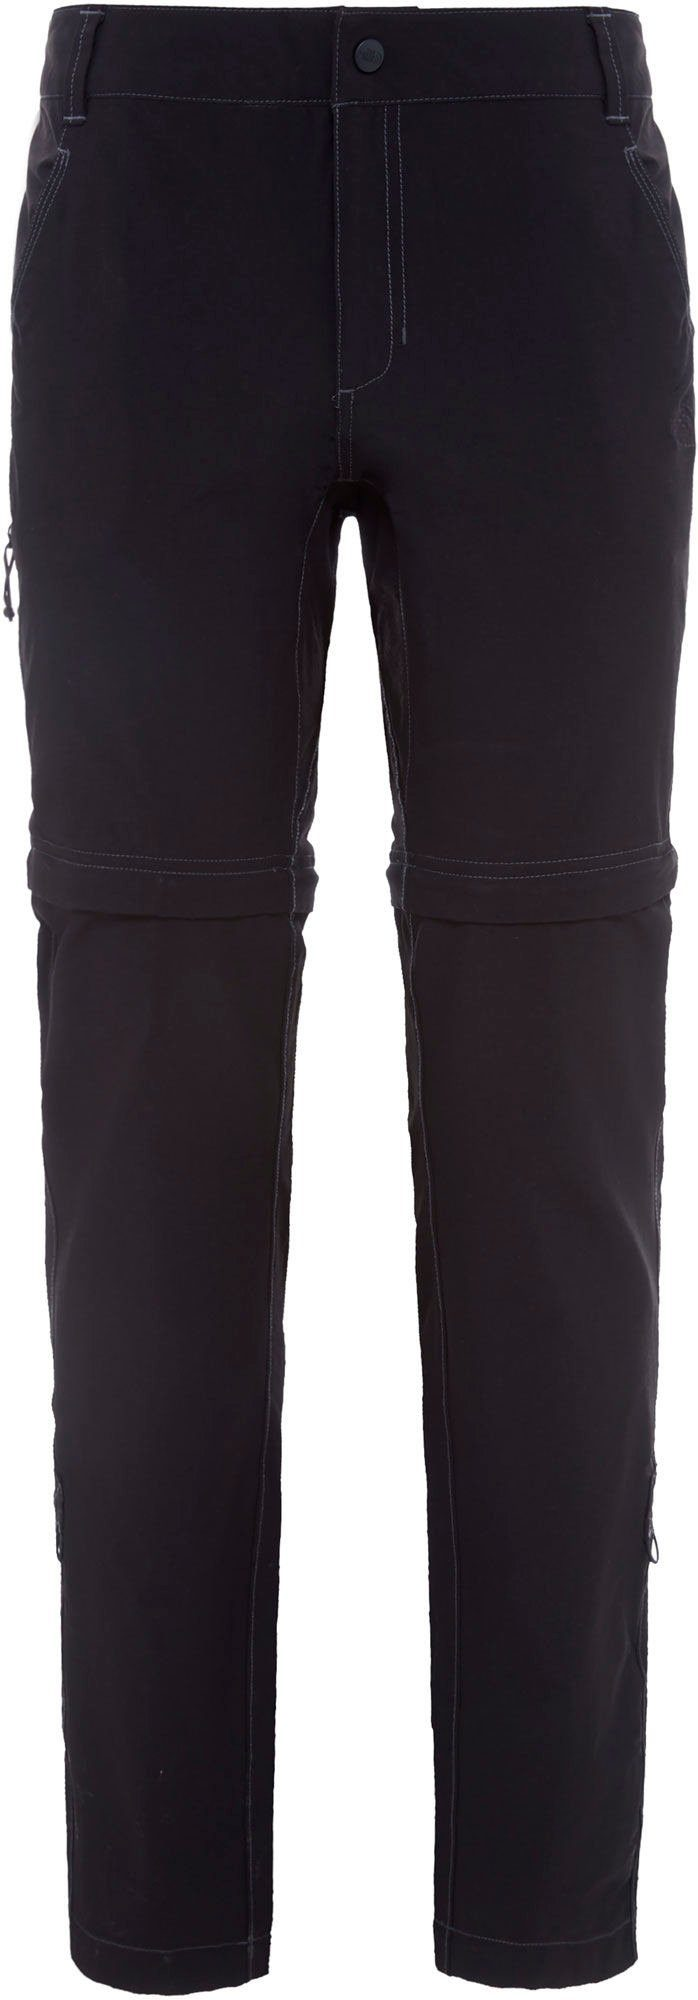 The North Face Hose »Exploration Convertible Pants Women Regular«